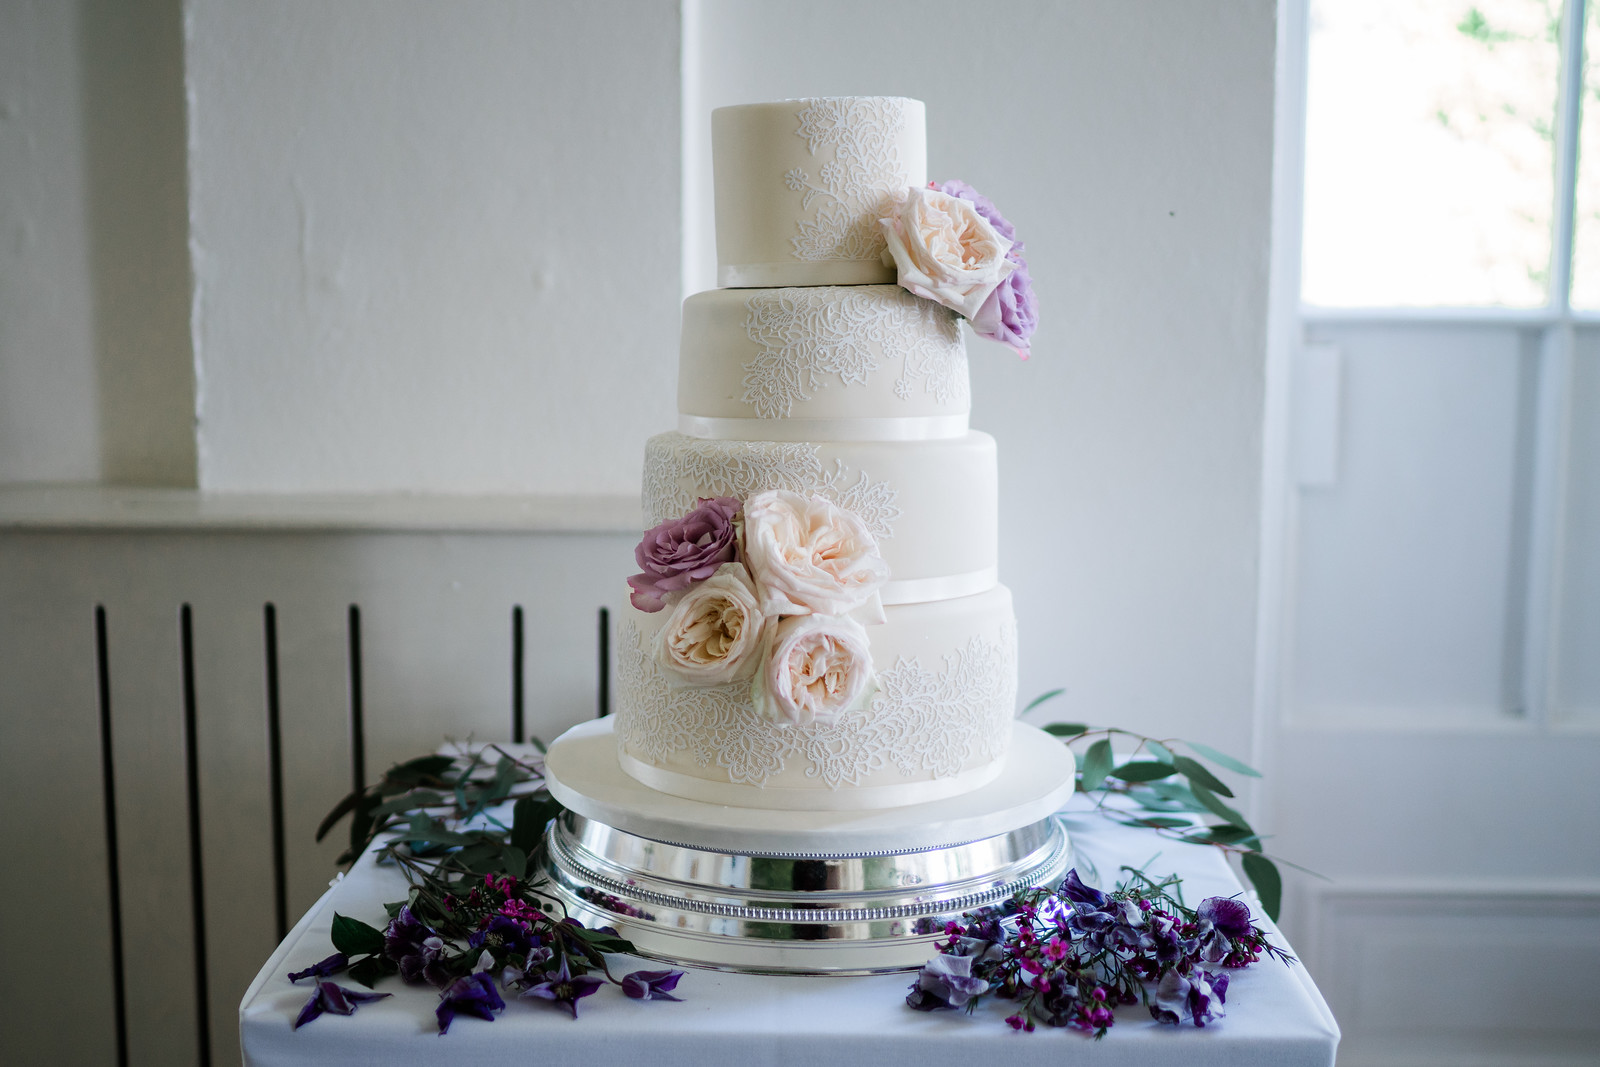 White wedding cake with flowers as decoration